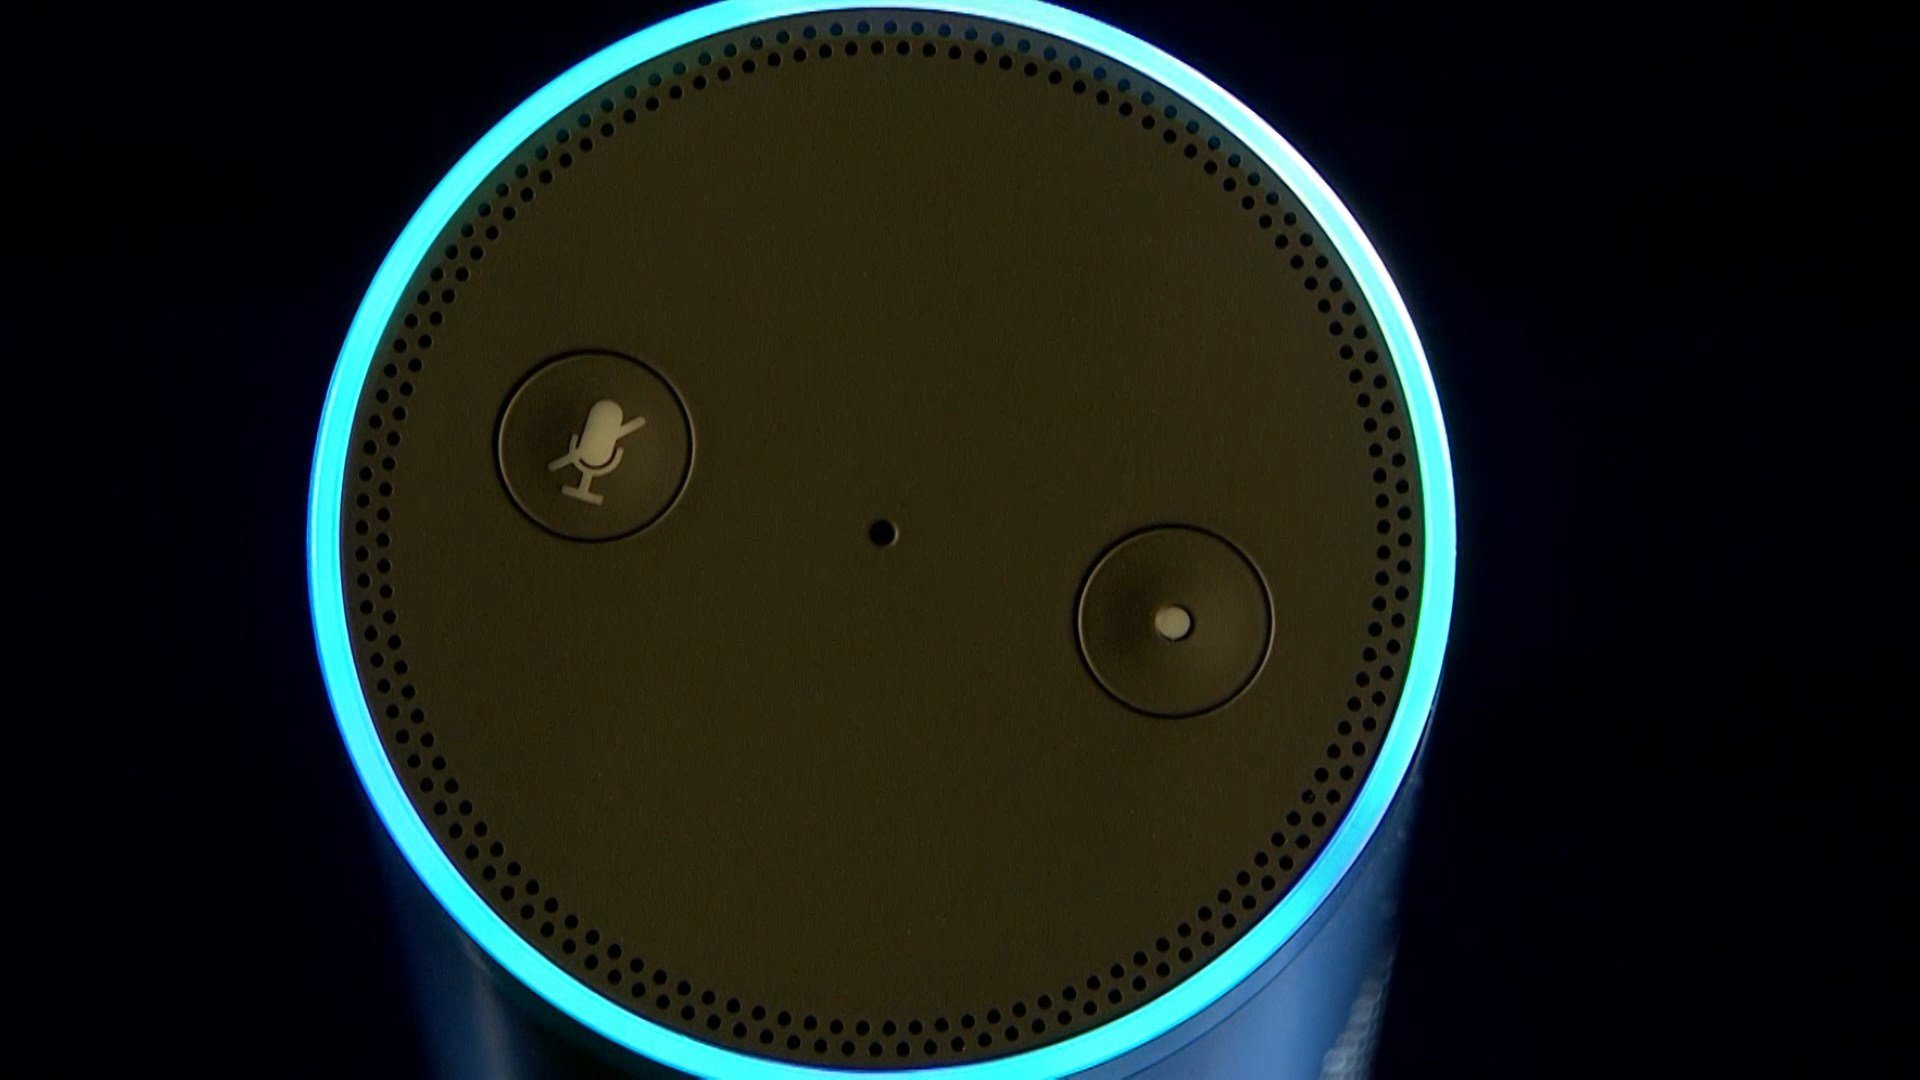 """Amazon announced a new version of the smart speaker called """"Alexa for Hospitality"""" that could assist guests with in-room services."""